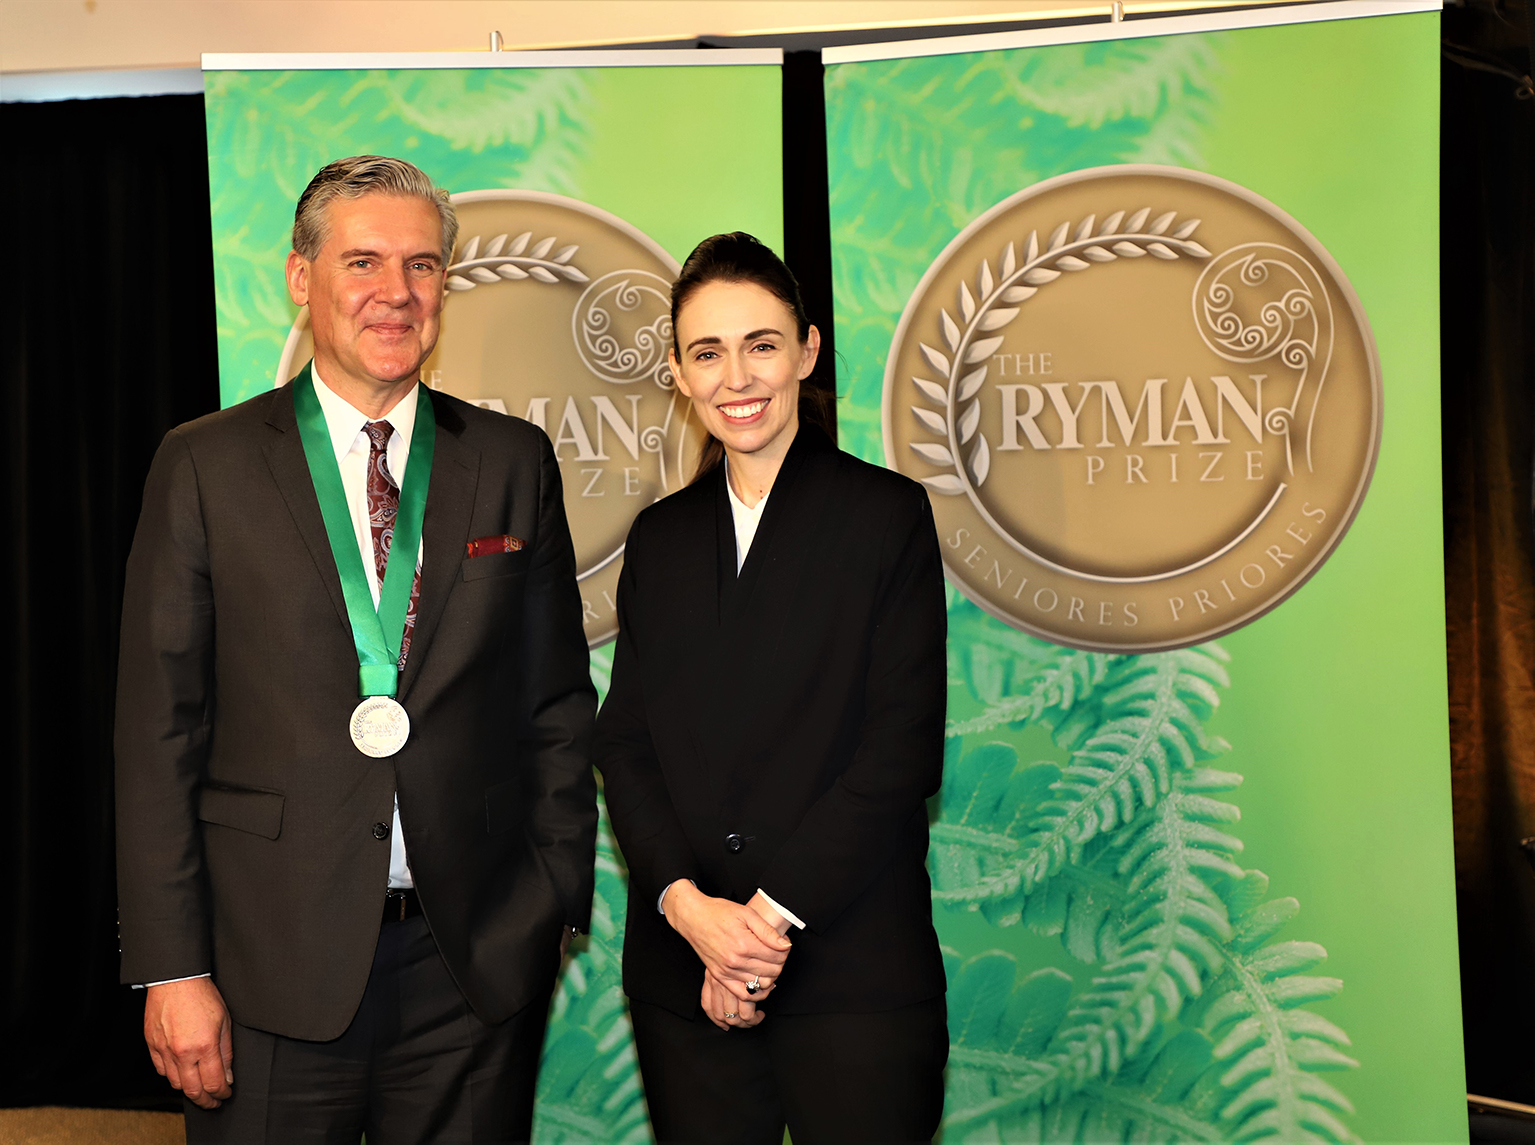 Dr. Michael Fehlings with New Zealand Prime Minister Jacinda Ardern, receiving the Ryman Prize.